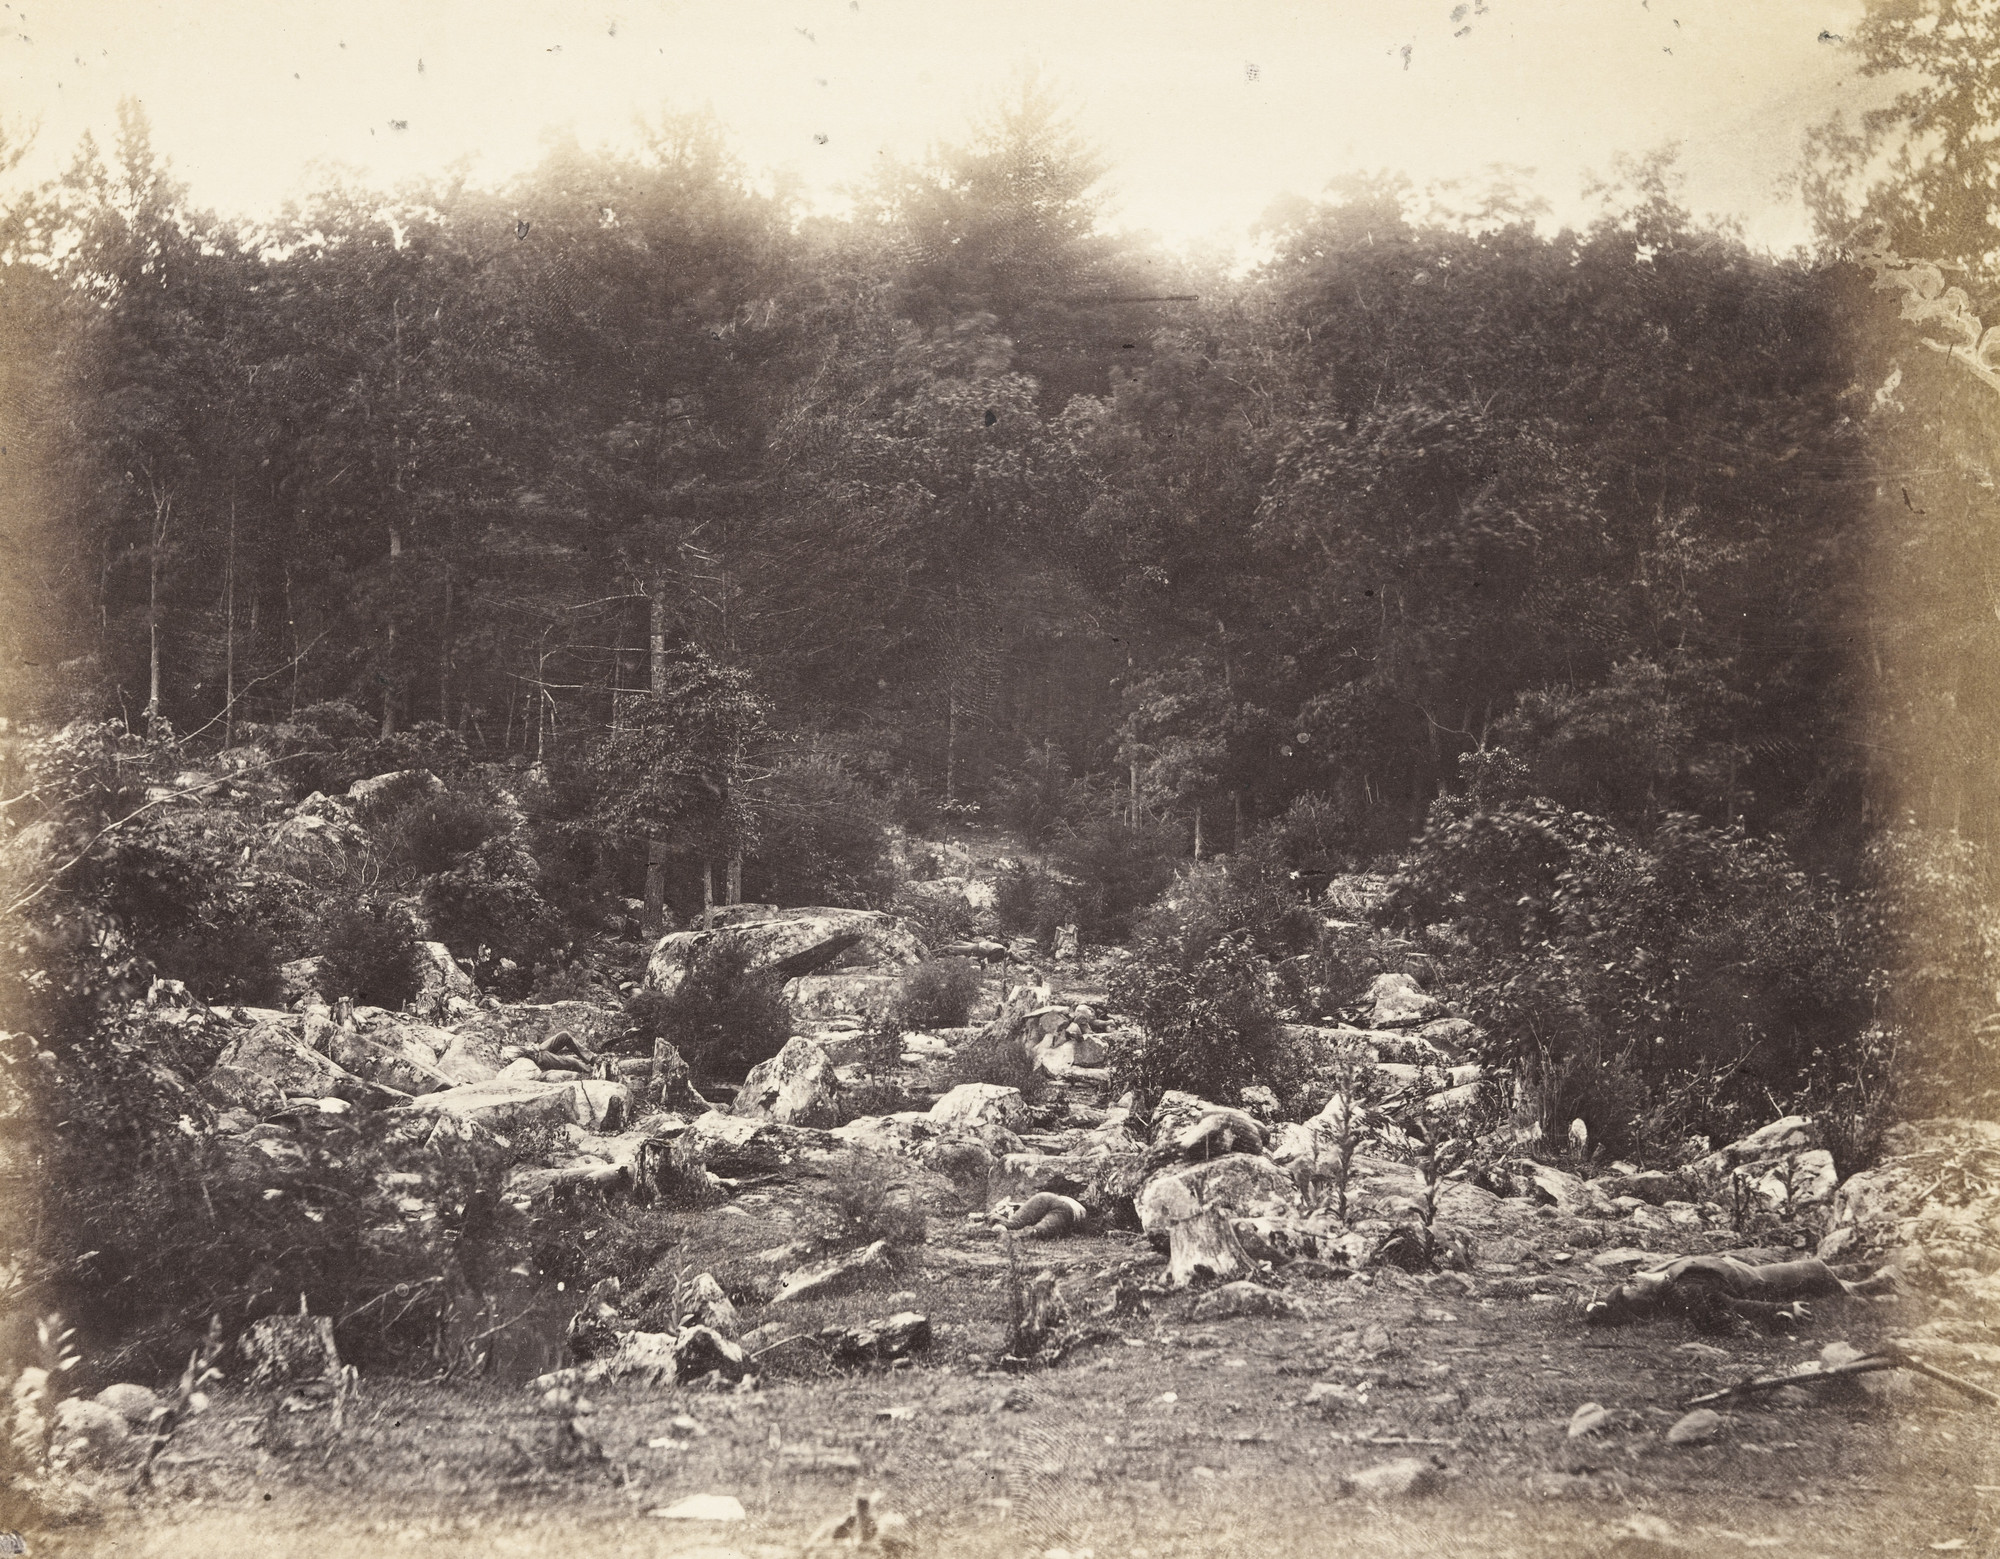 Alexander Gardner, Timothy O'Sullivan. Slaughter Pen, Foot of the Round Top, Gettysburg. July, 1863